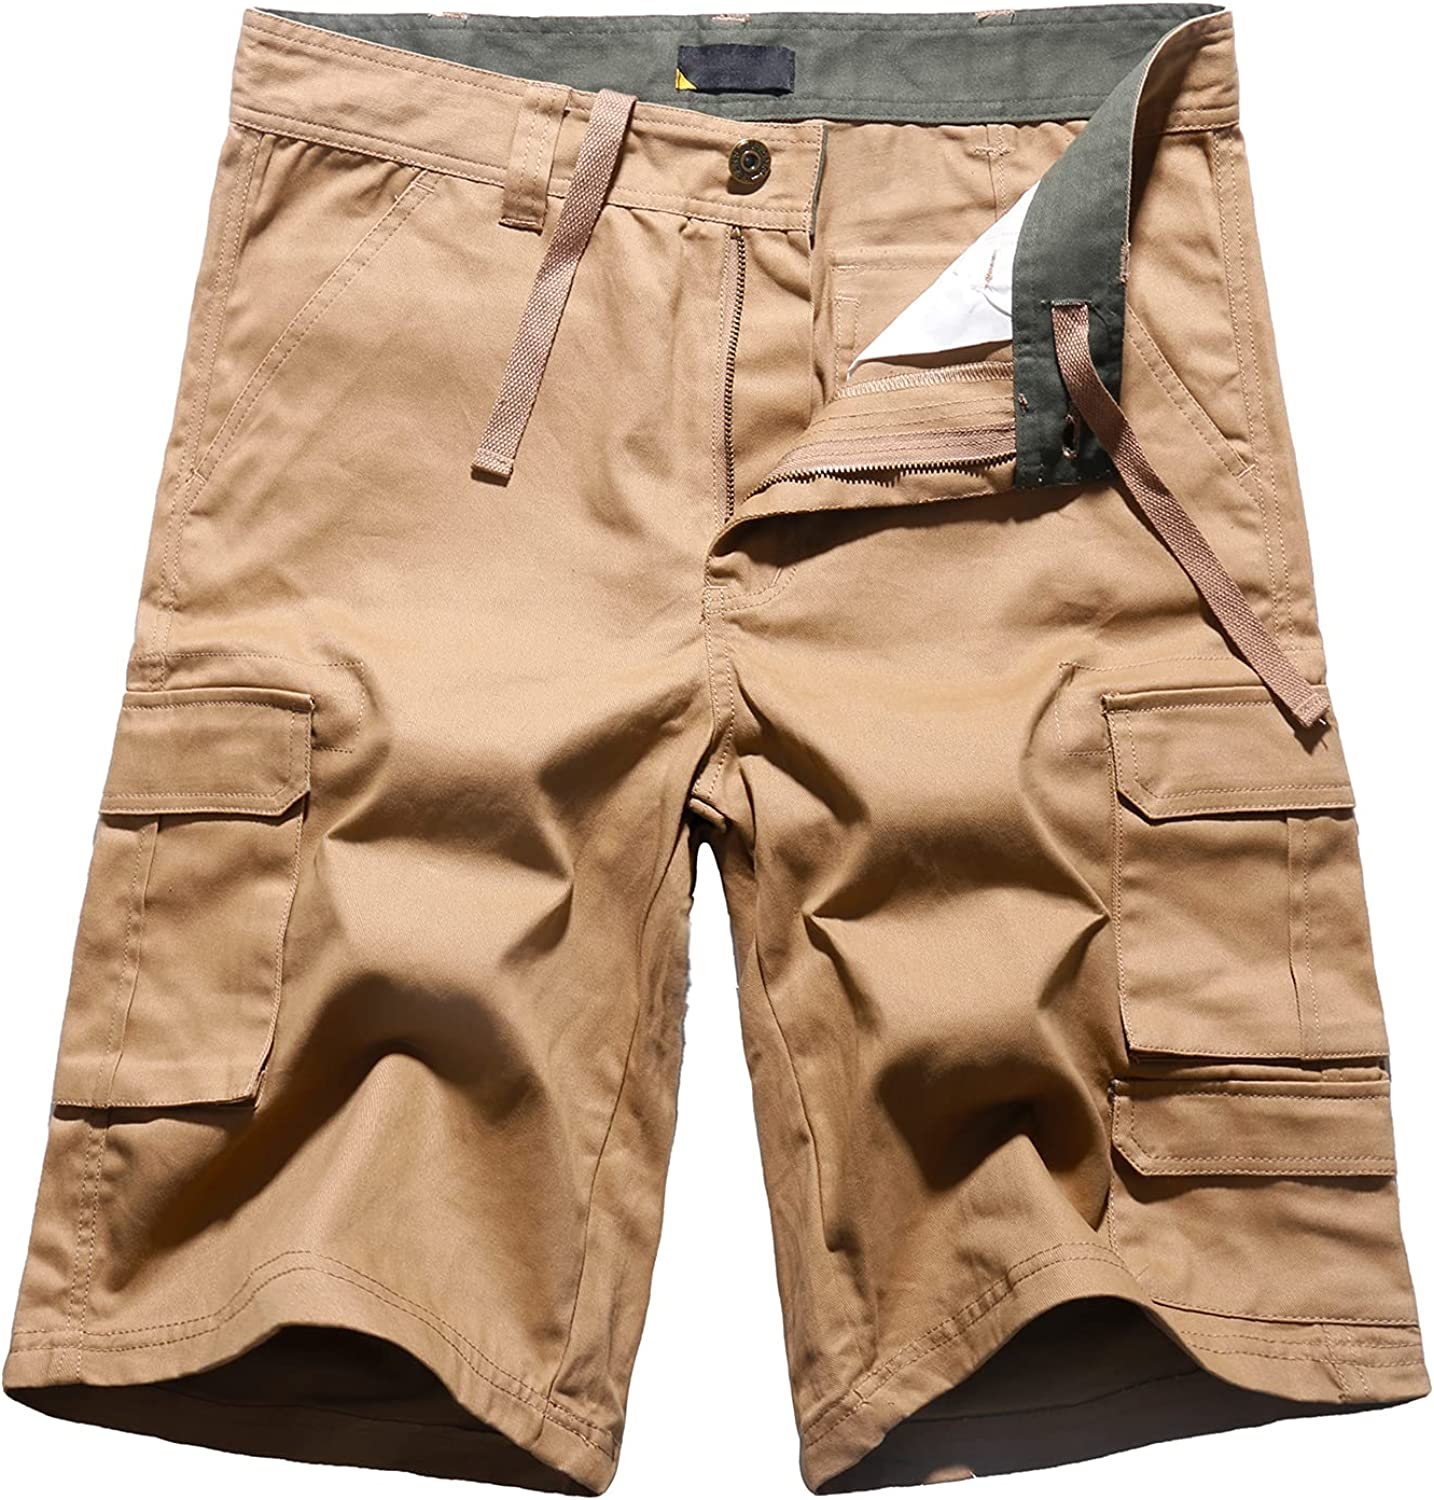 ZITY Max Max 72% OFF 64% OFF Men's Cargo Shorts Multi Pockets Casual